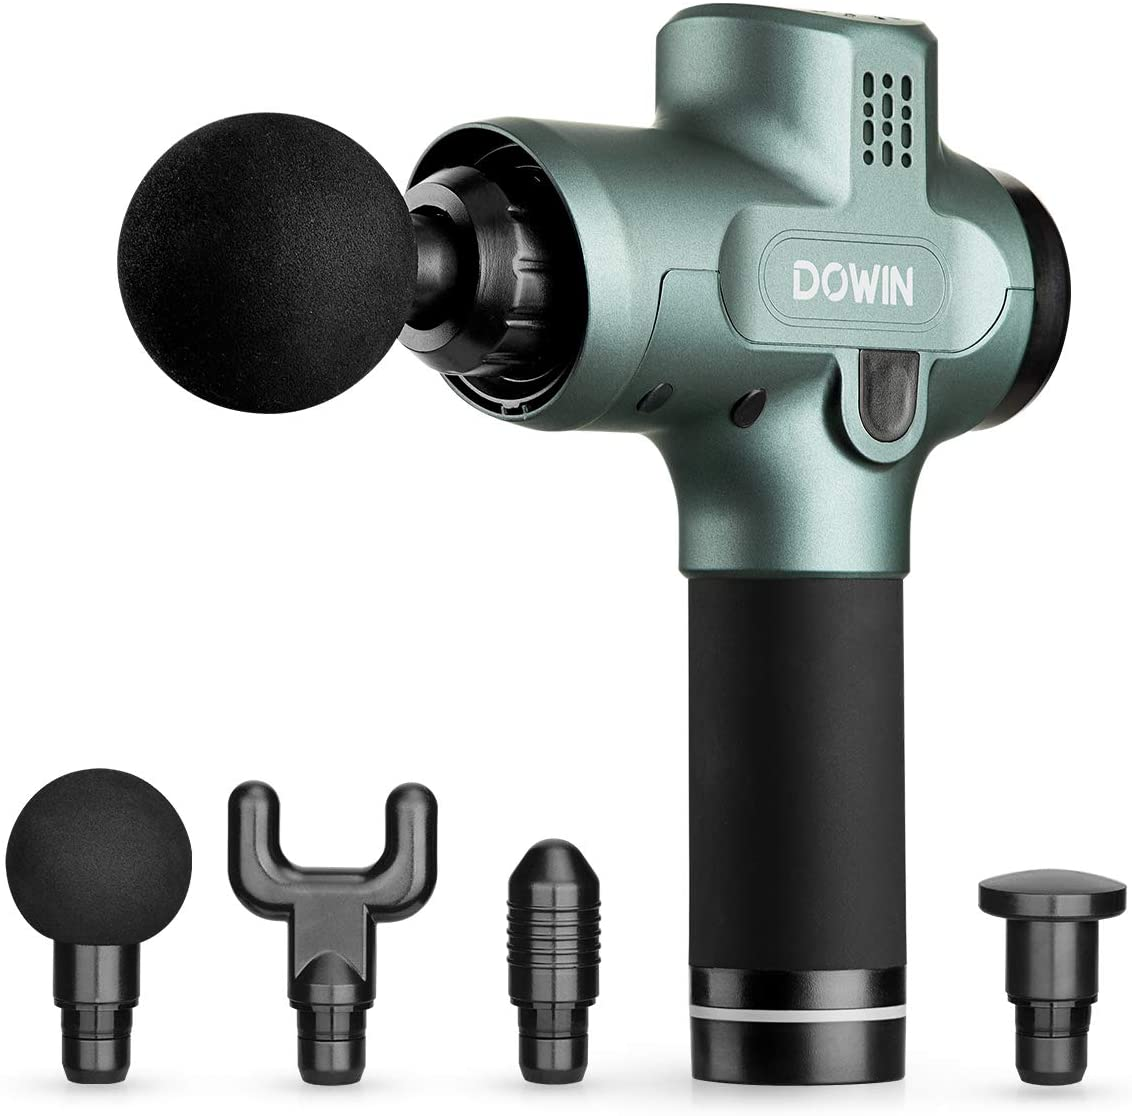 Best Overal: Dowin Massage Gun for Athletes